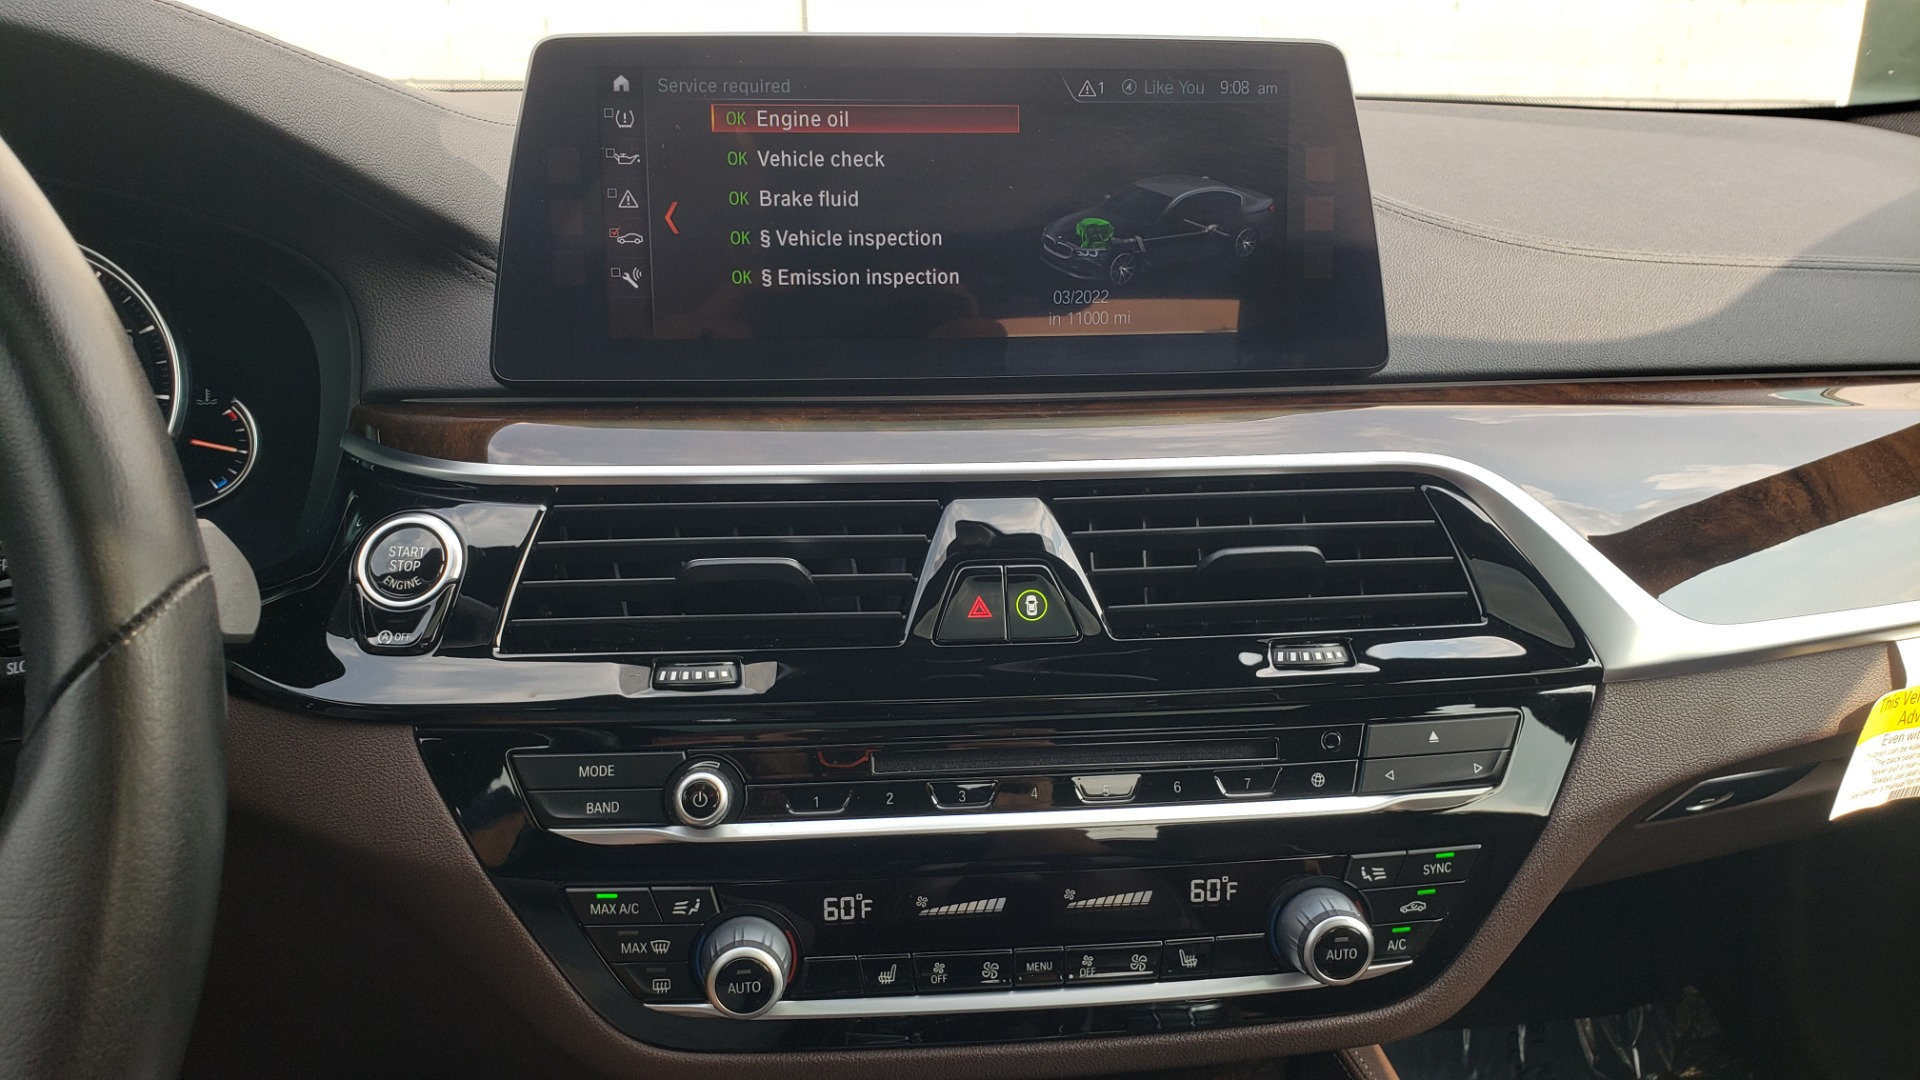 Used 2018 BMW 5 SERIES 540I XDRIVE PREMIUM / EXECUTIVE / LUXURY / H/K SND / REMOTE CONTROL PARKING for sale $40,995 at Formula Imports in Charlotte NC 28227 47